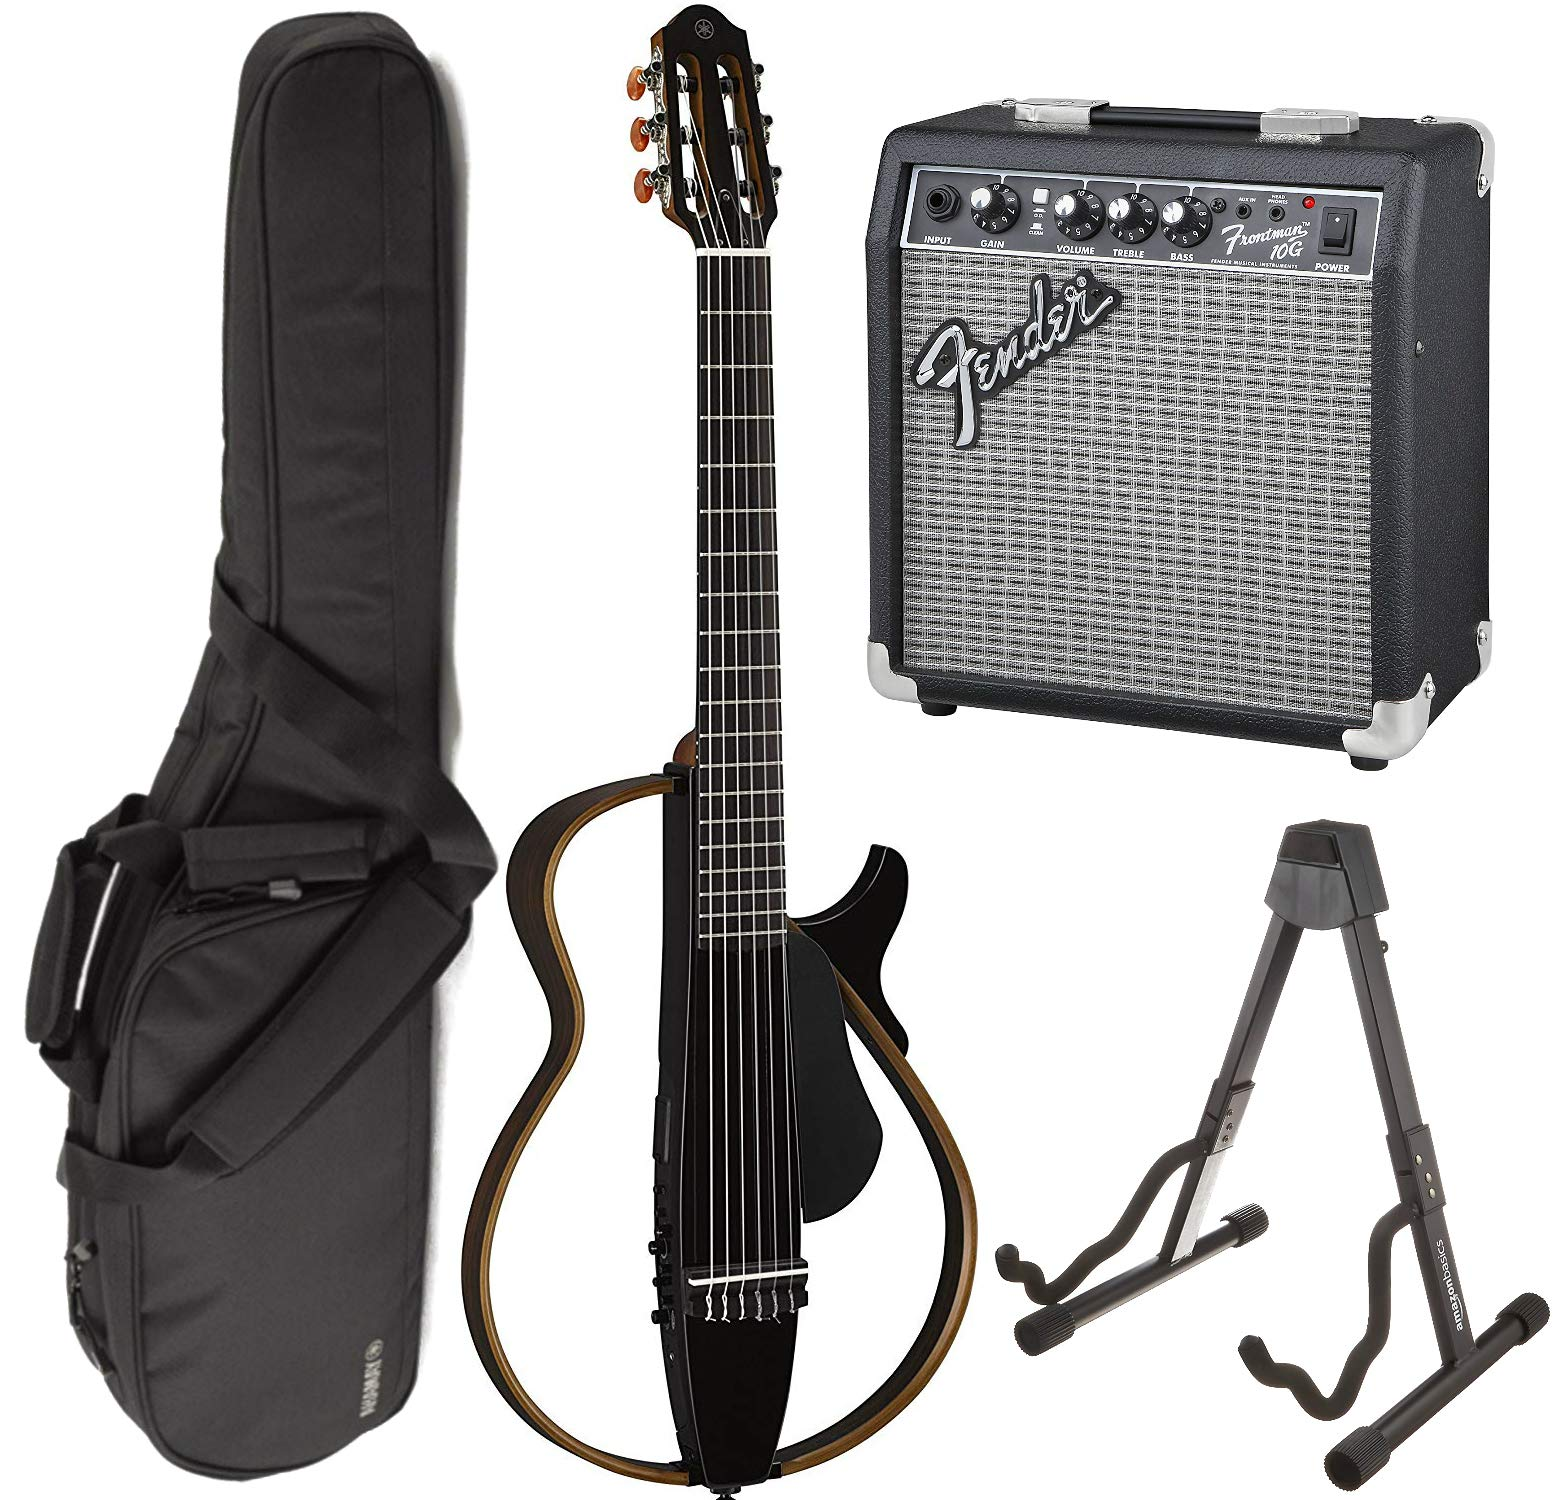 Cheap Yamaha SLG200N TBL Nylon Silent String Acoustic Electric Guitar (Translucent Black) bundled with the Fender Frontman 10G Electric Guitar Amplifier Gigbag and Guitar Stand Black Friday & Cyber Monday 2019